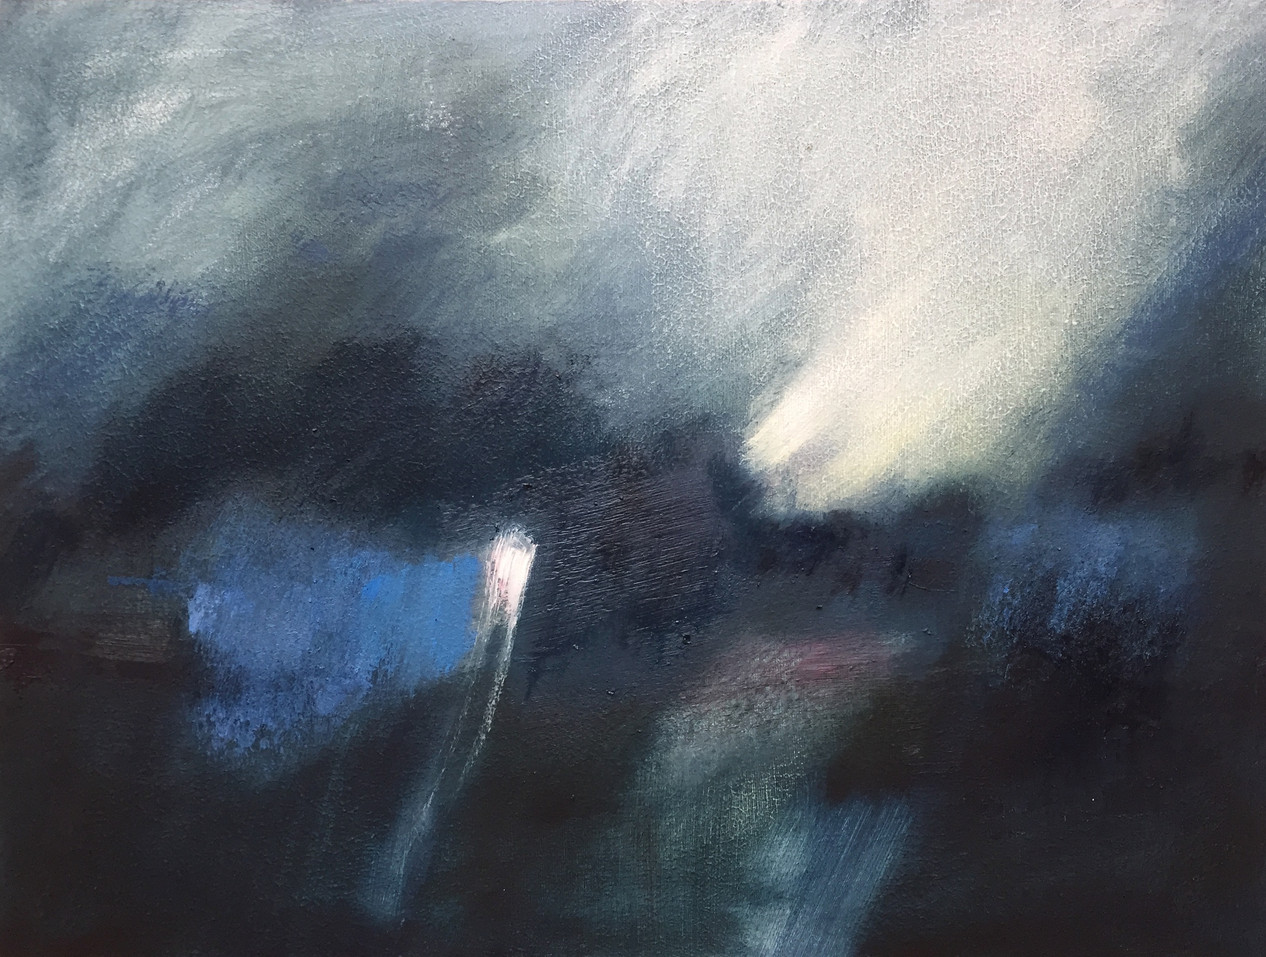 'Here and now' £120